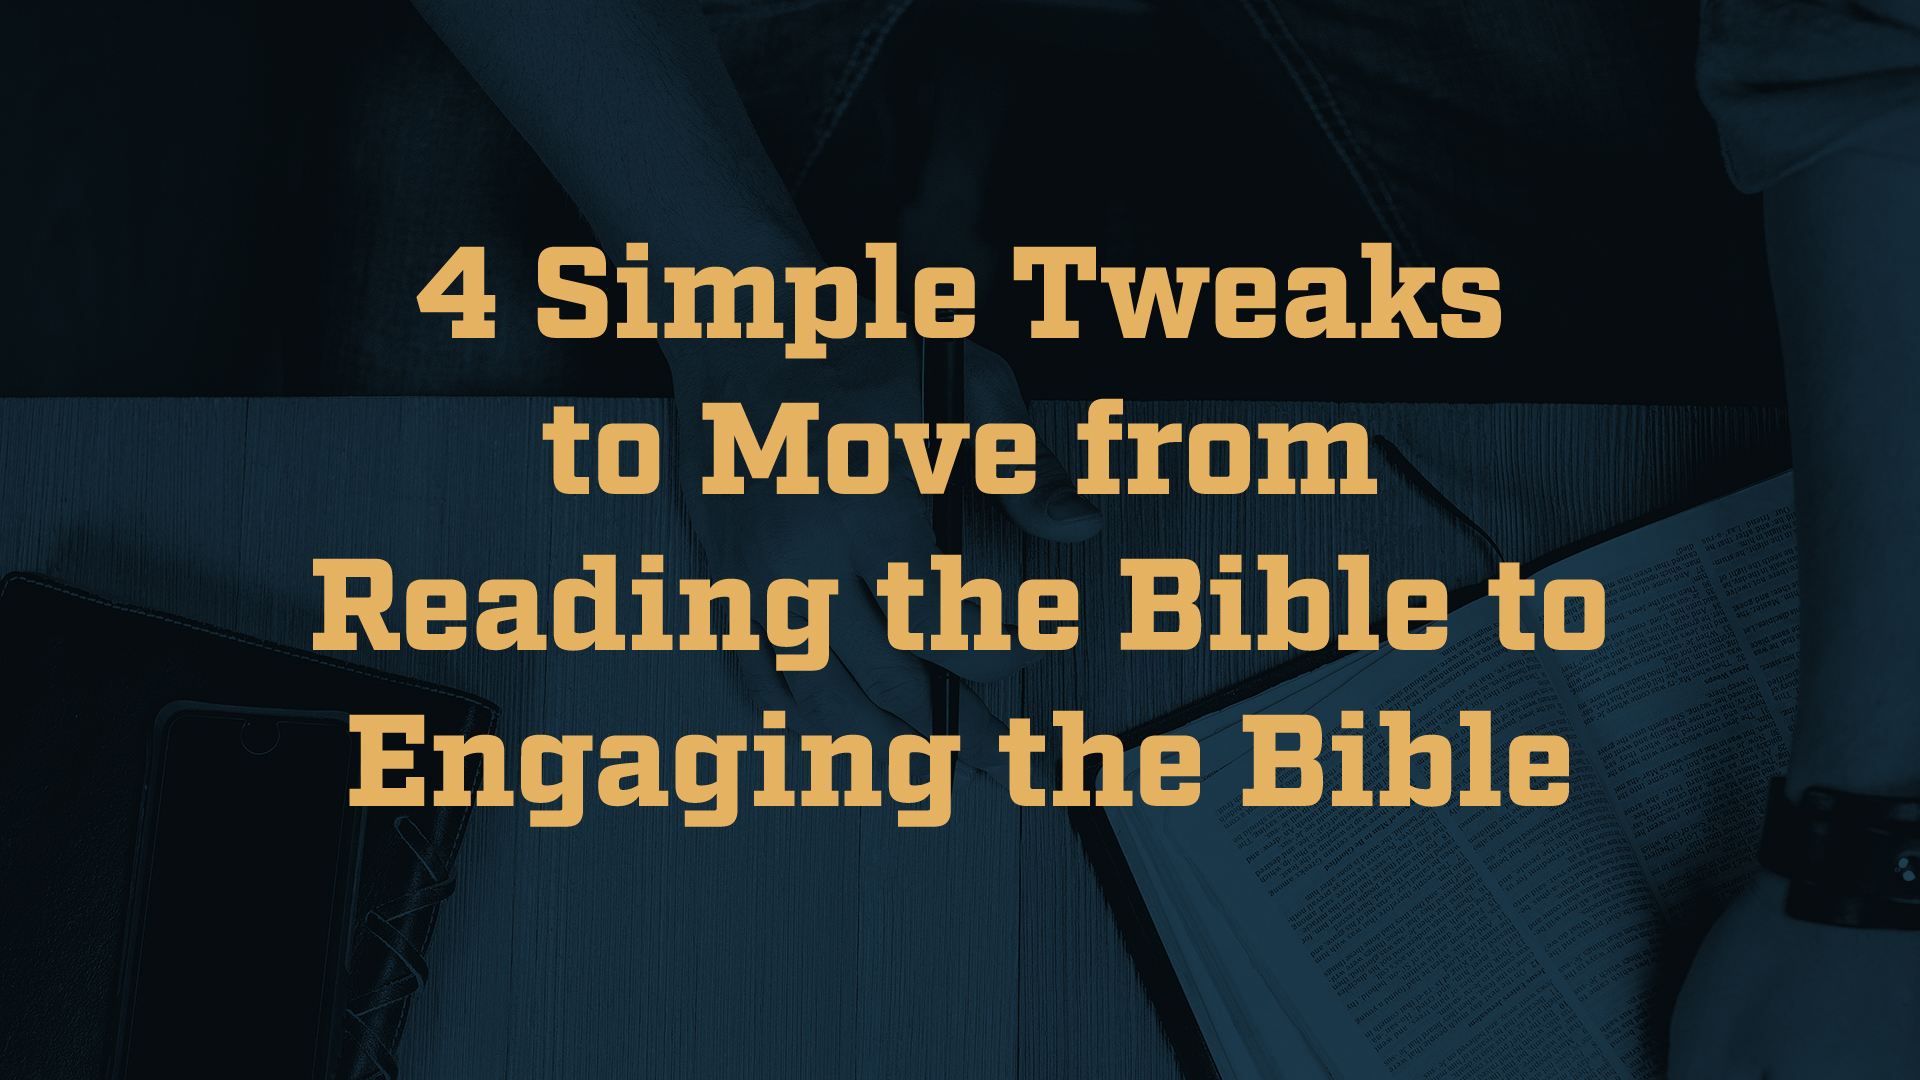 Four Simple Tweaks to Move from Reading the Bible to Engaging the Bible